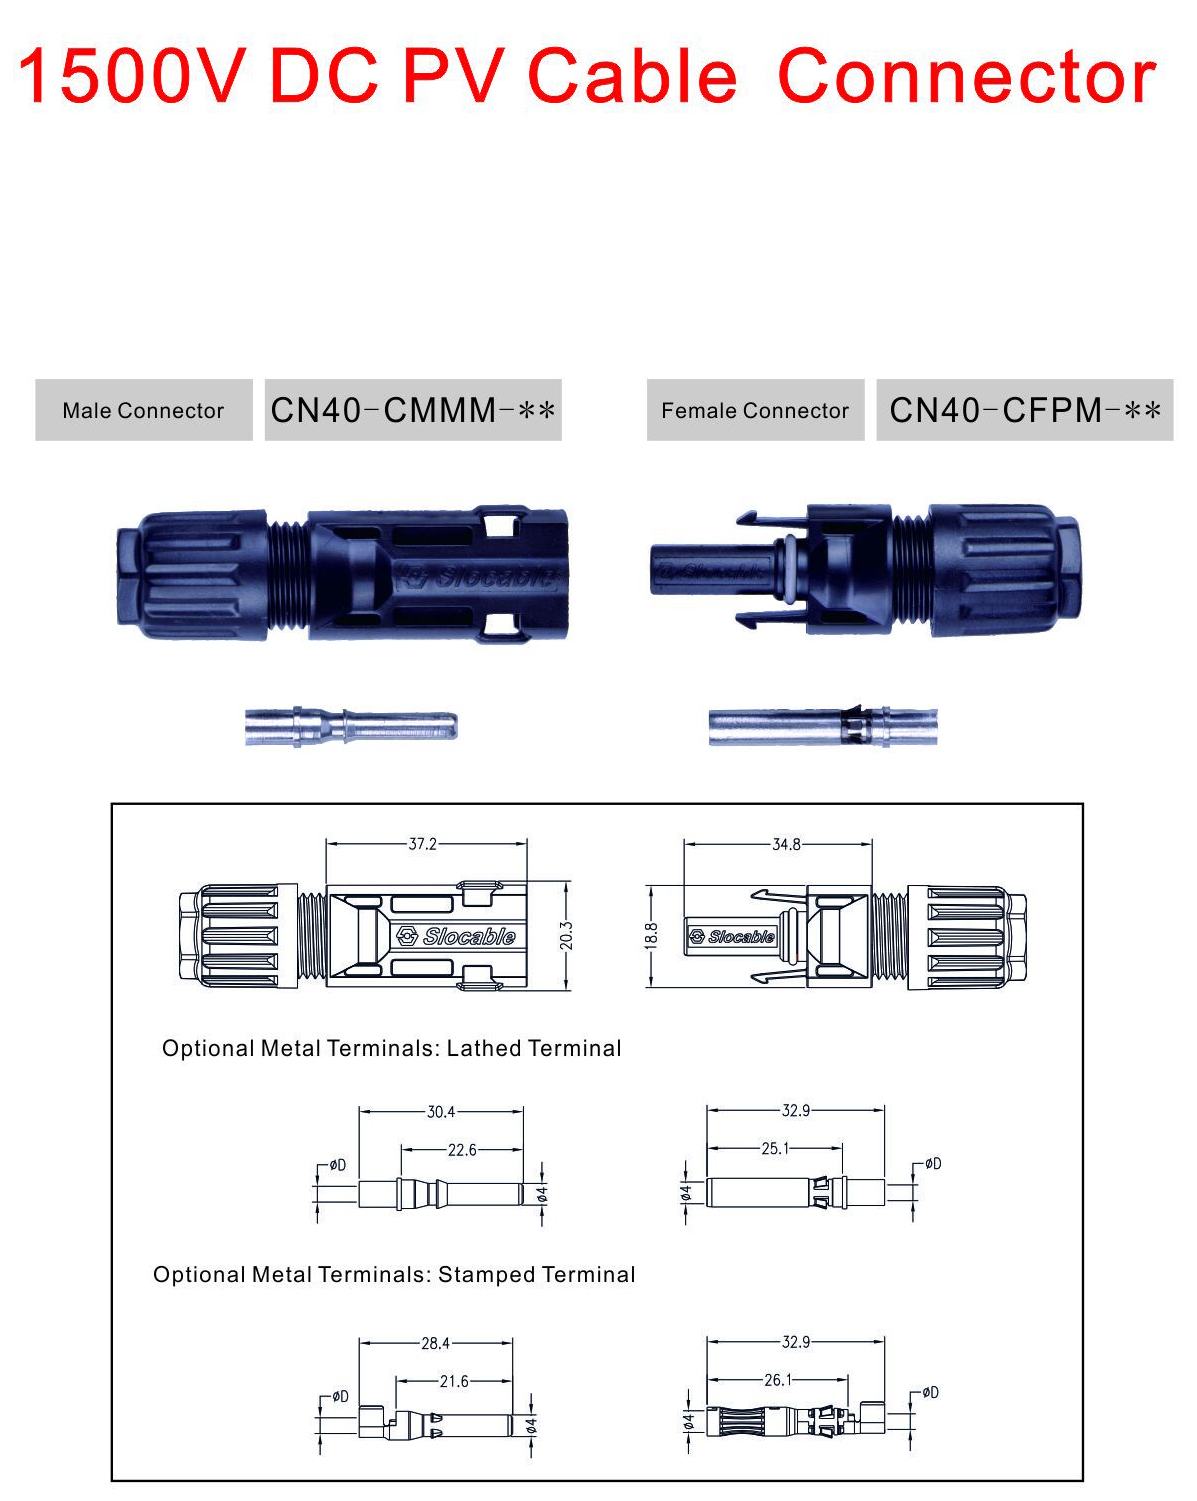 China CN40 2.5mm2, 4mm2 and 6mm2 Cable Solar Connector